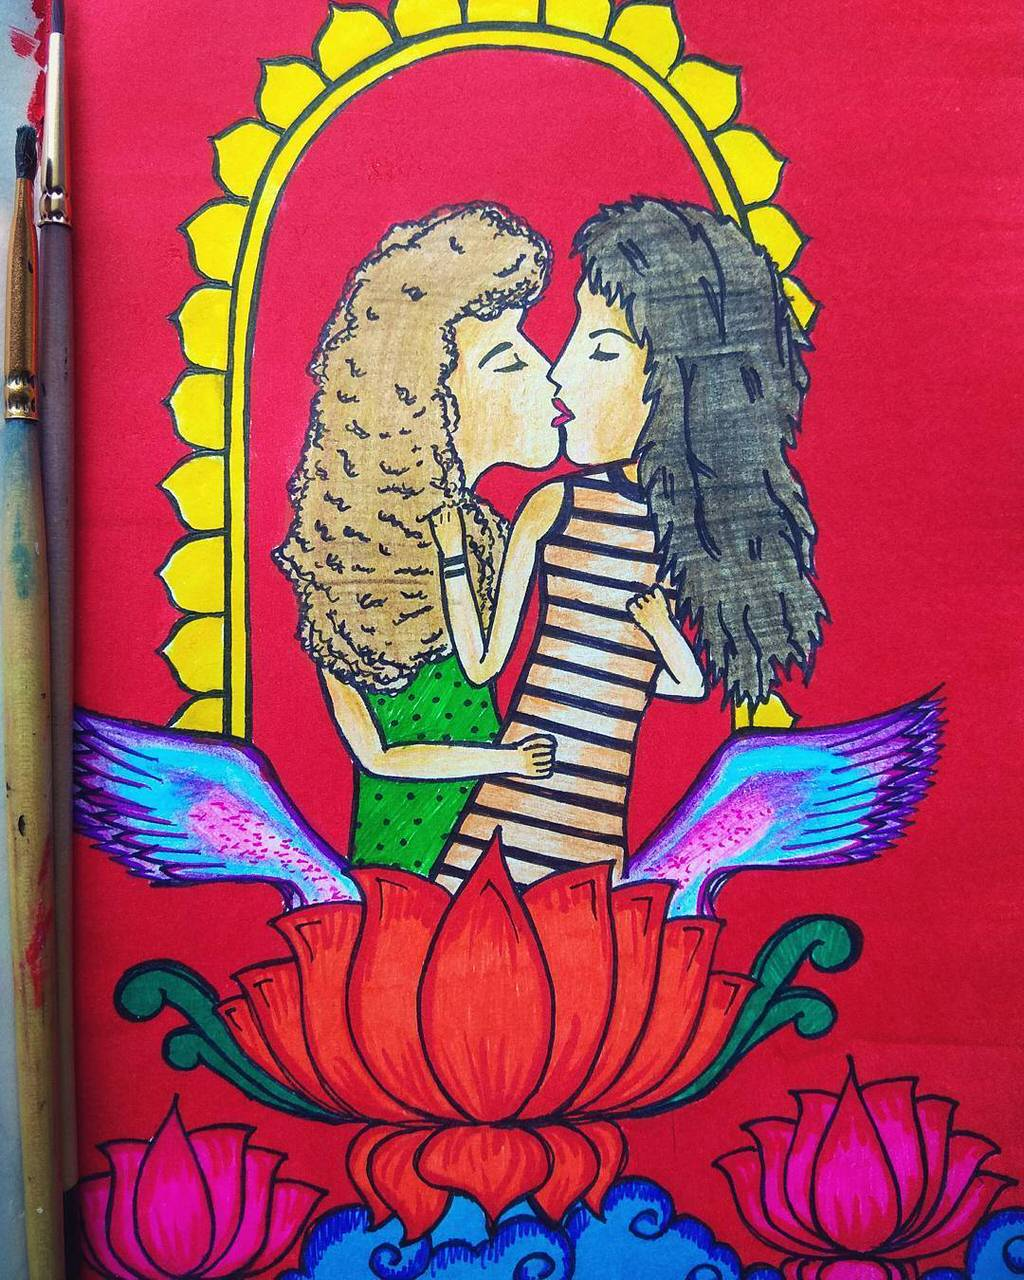 Meet Shristi Verma, The Instagram Artist Who Draws Queer Women In Love